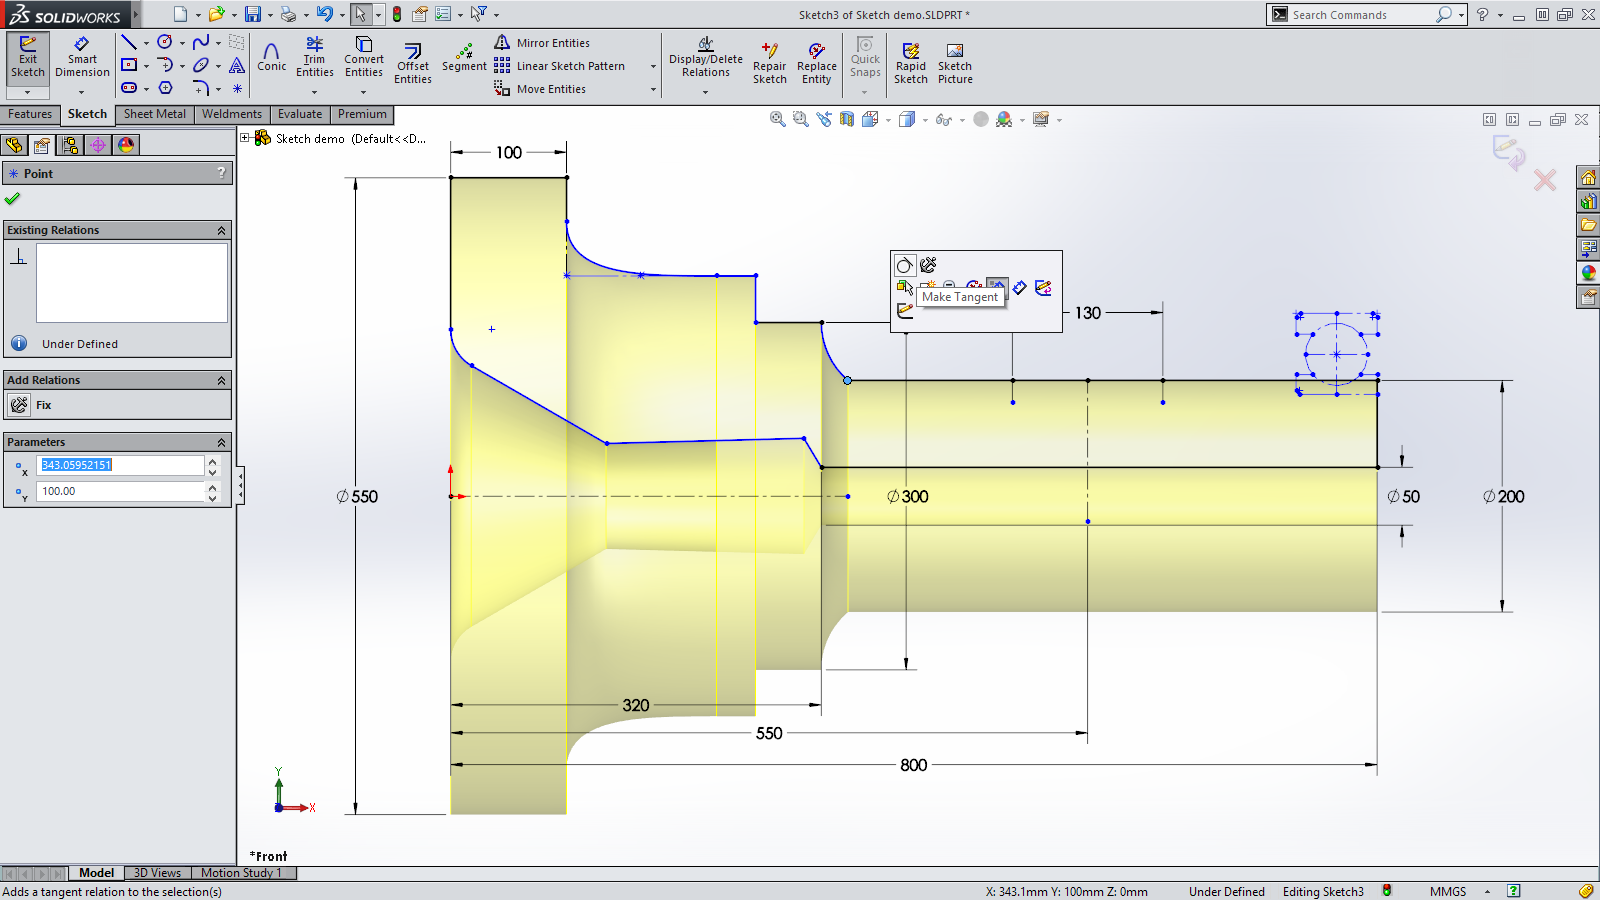 Sneak Peek: 15 Features coming in SOLIDWORKS 2015 – Sketch Relations on Endpoints